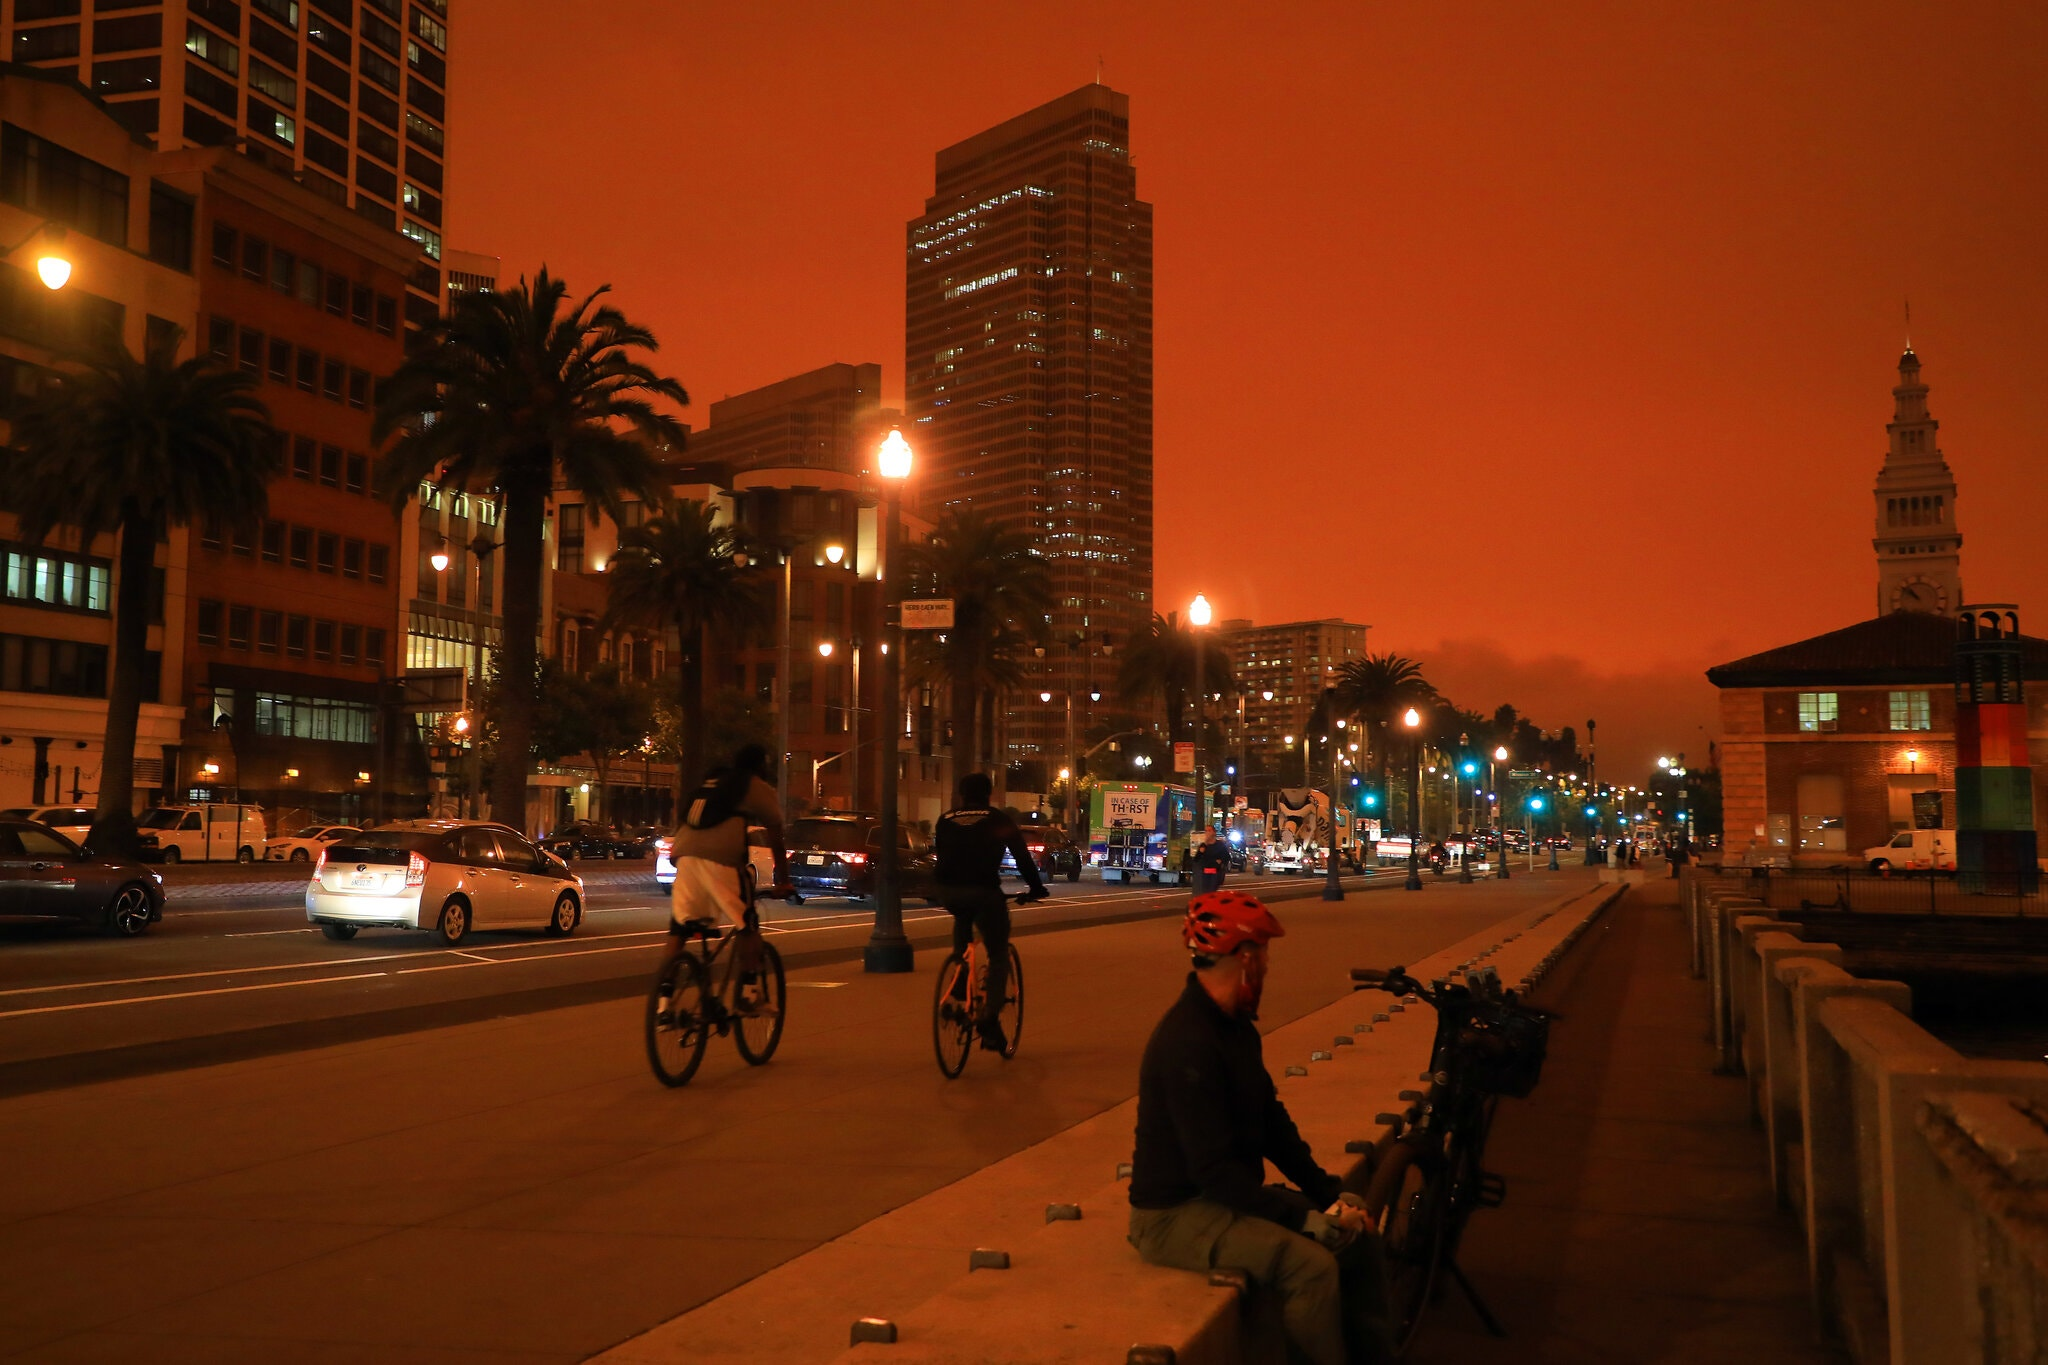 The entire Western US is ablaze in massive wild fires-09fires-sky03alt-superjumbo-jpg